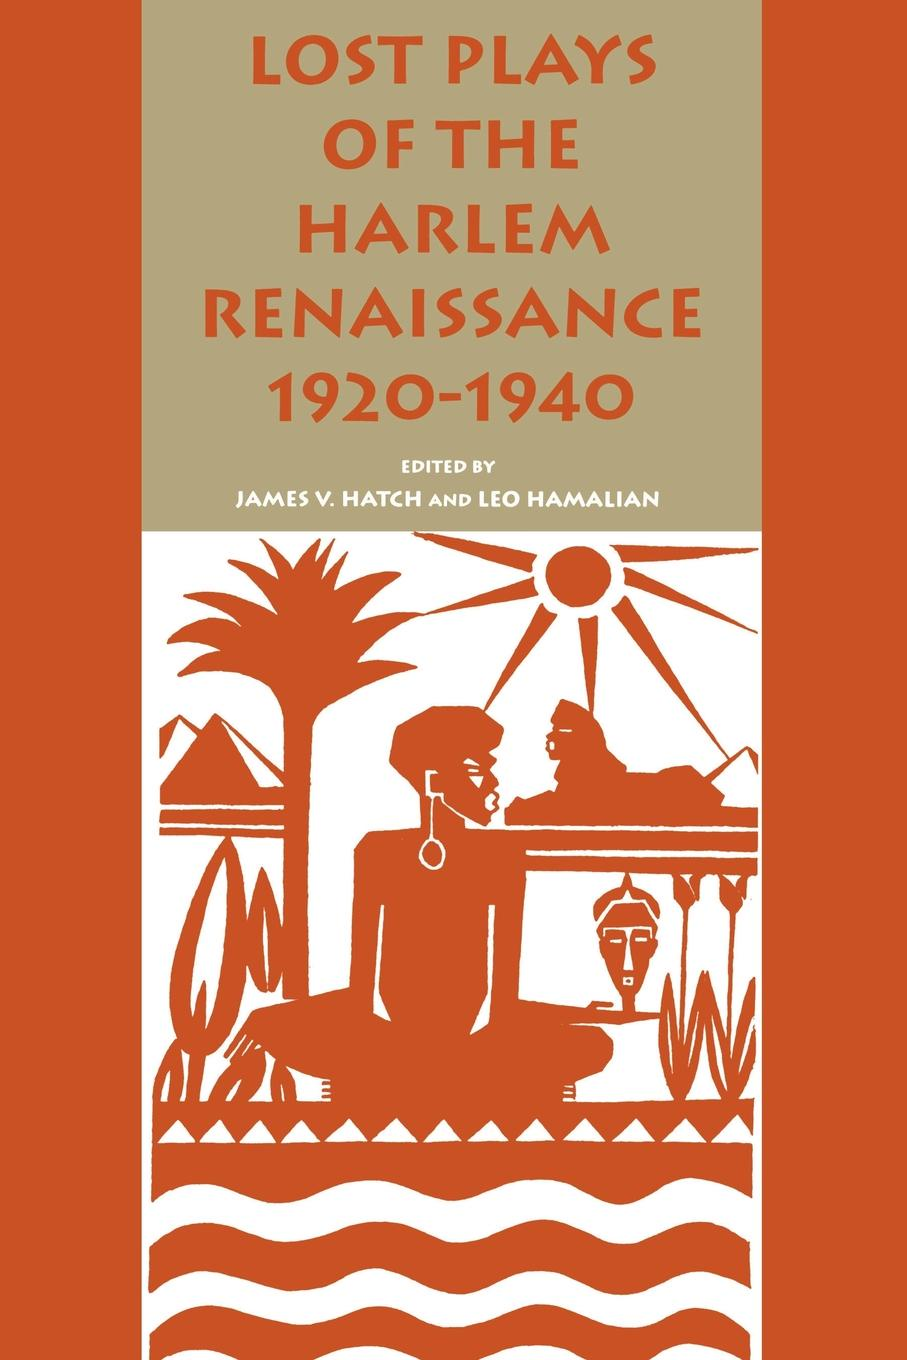 Lost Plays of the Harlem Renaissance, 1920-1940 plays